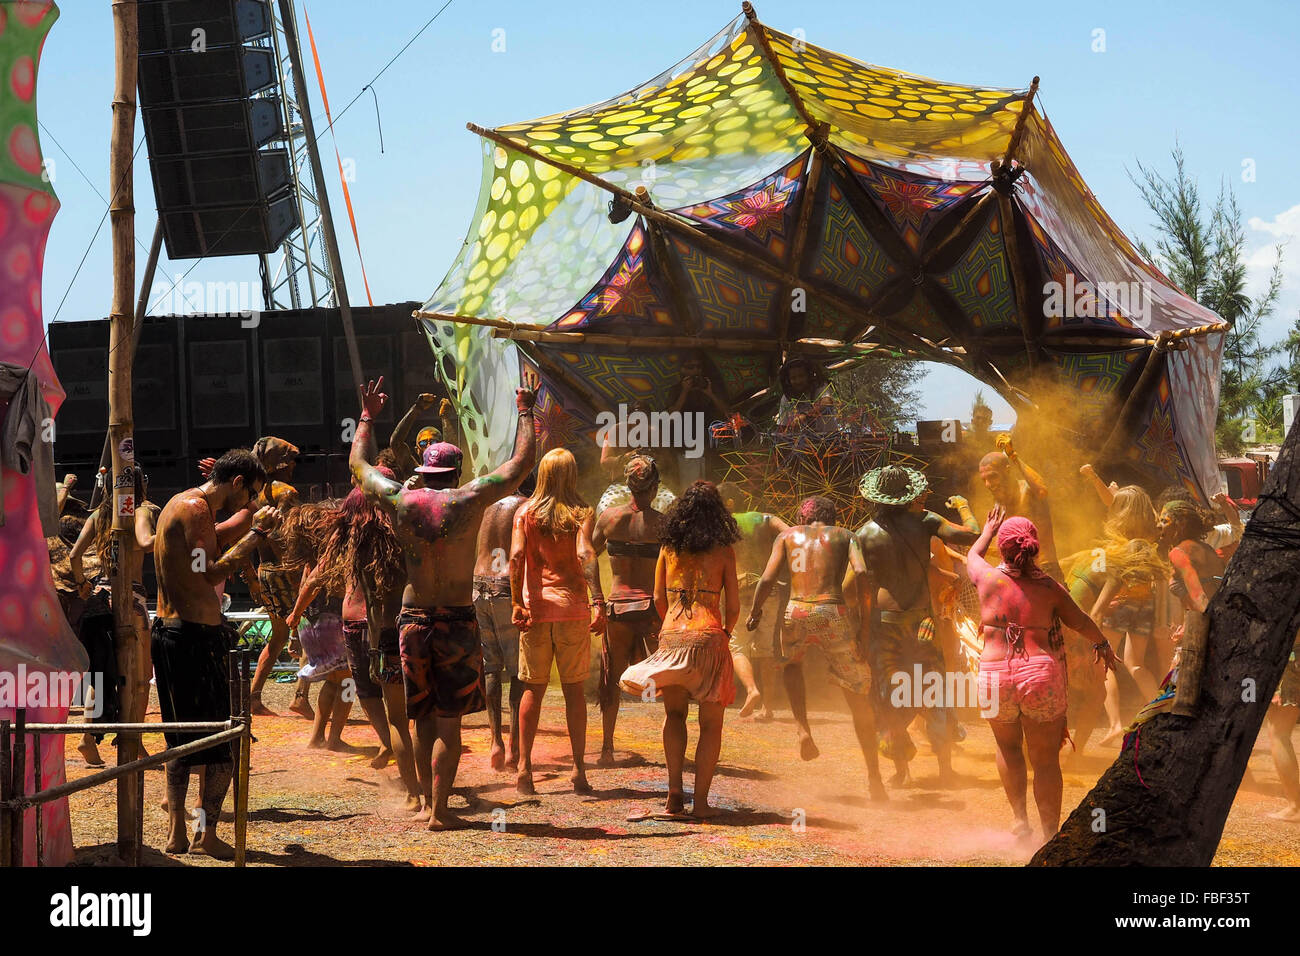 Crowd dancing at electronic music festival at Praia dos Garcez, Bahia, Brazil. - Stock Image